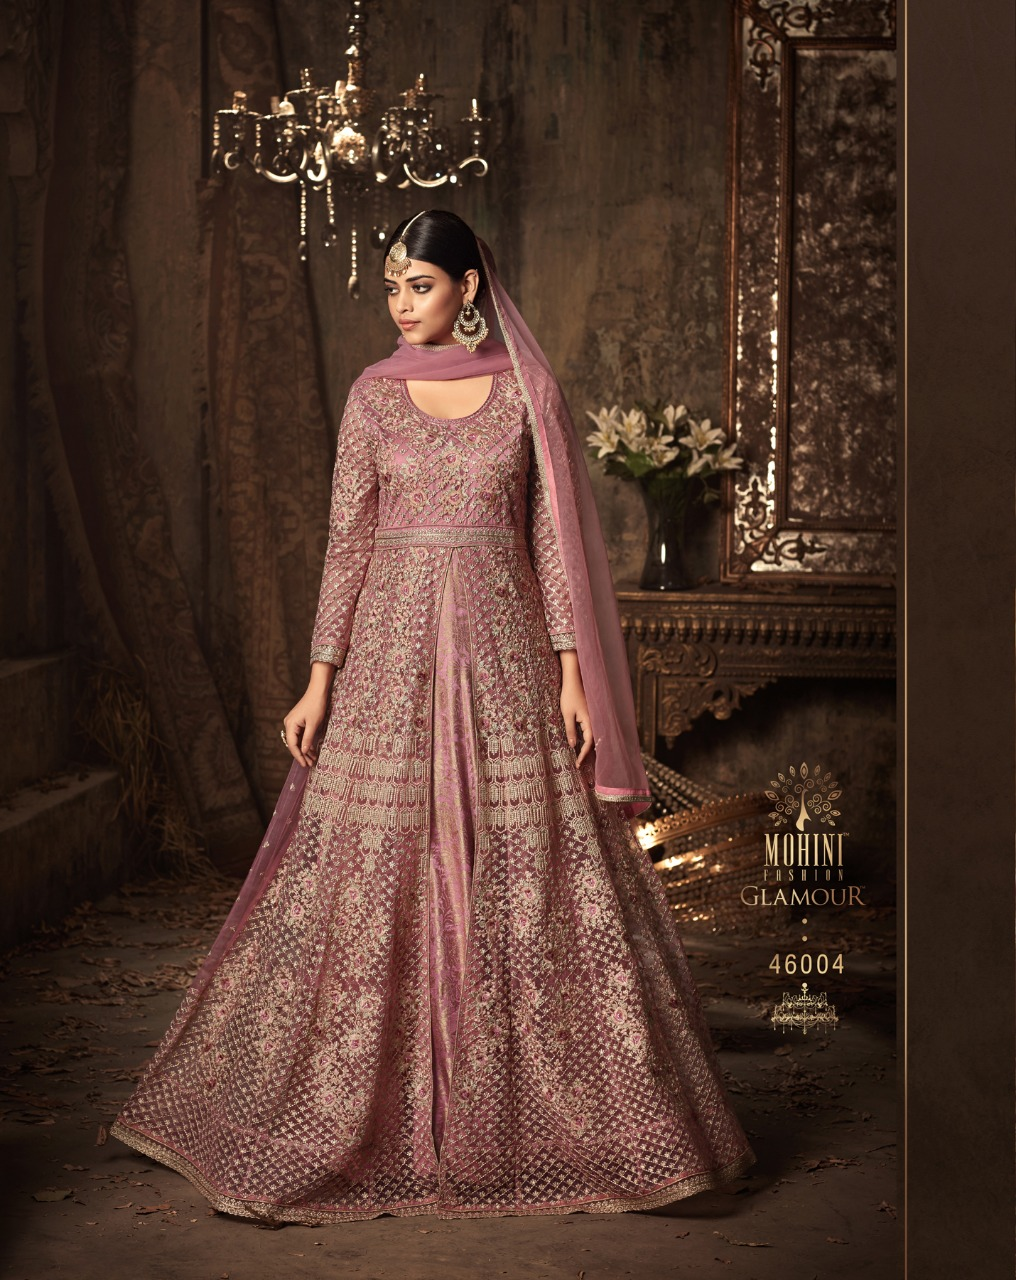 Mohini Fashions Glamour Premium Eid Collection 46004